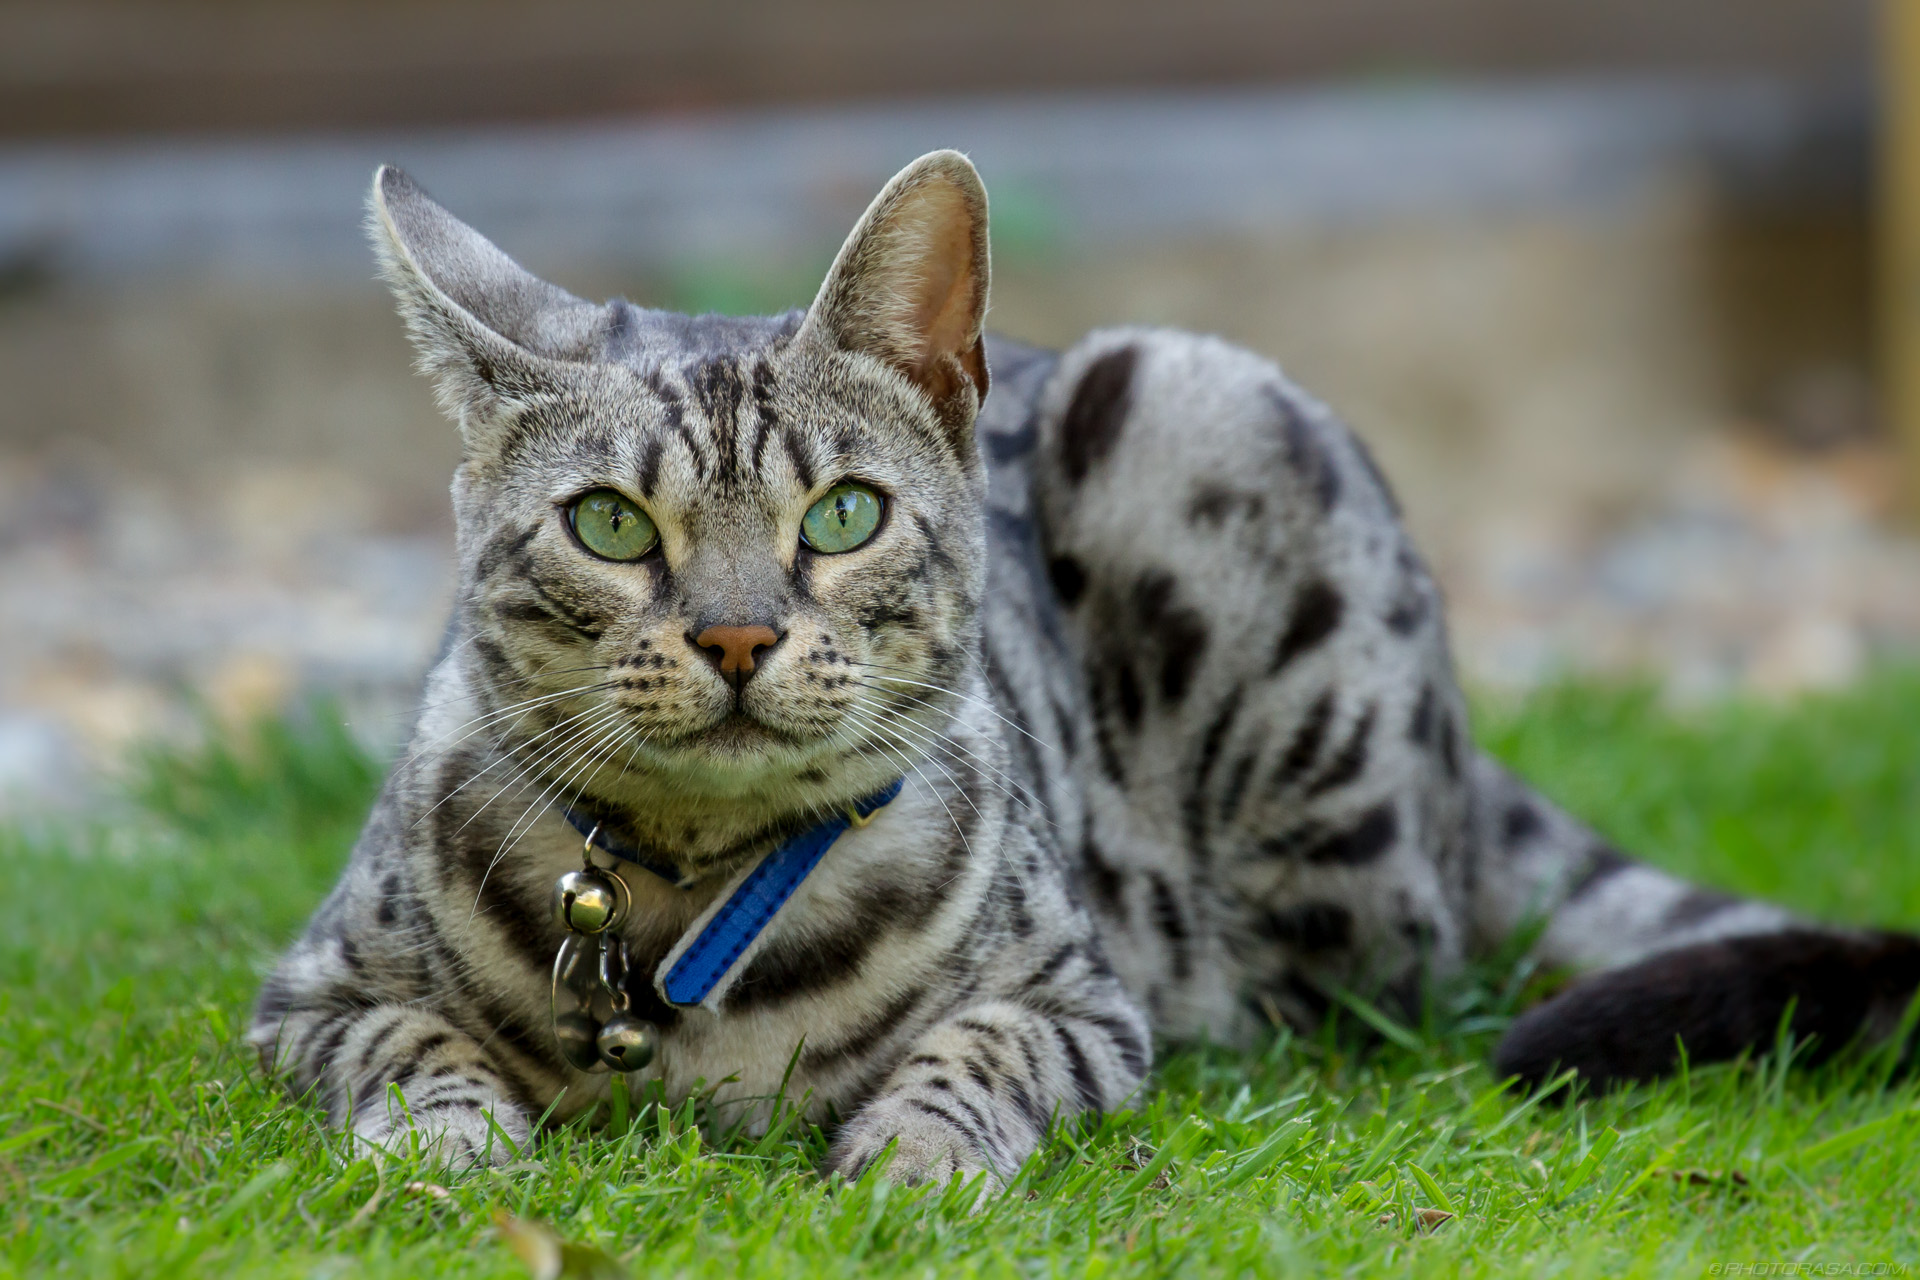 http://photorasa.com/silver-tabby-cat/cat-with-a-squiffy-turned-ear/